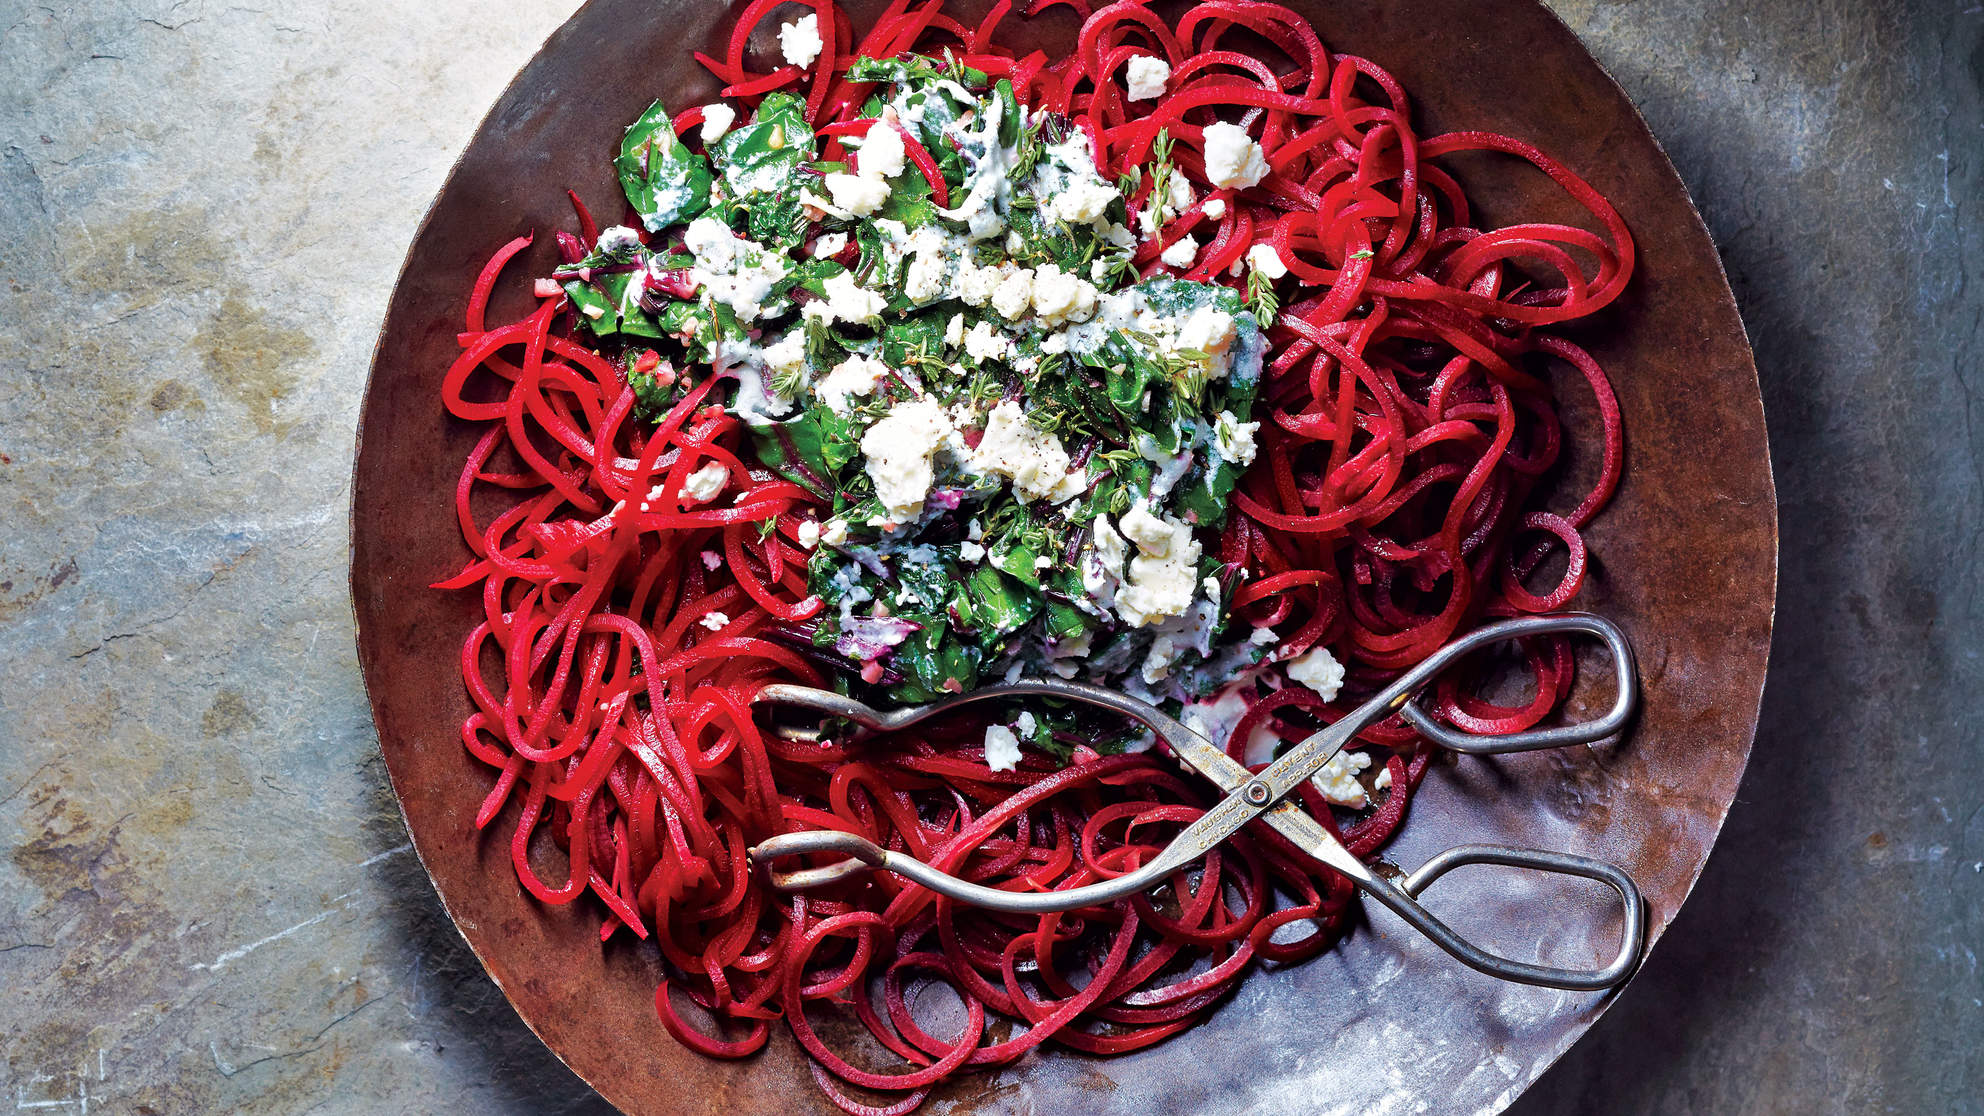 beet-pasta-beet-greens-goat-cheese-noodles-made-healthy